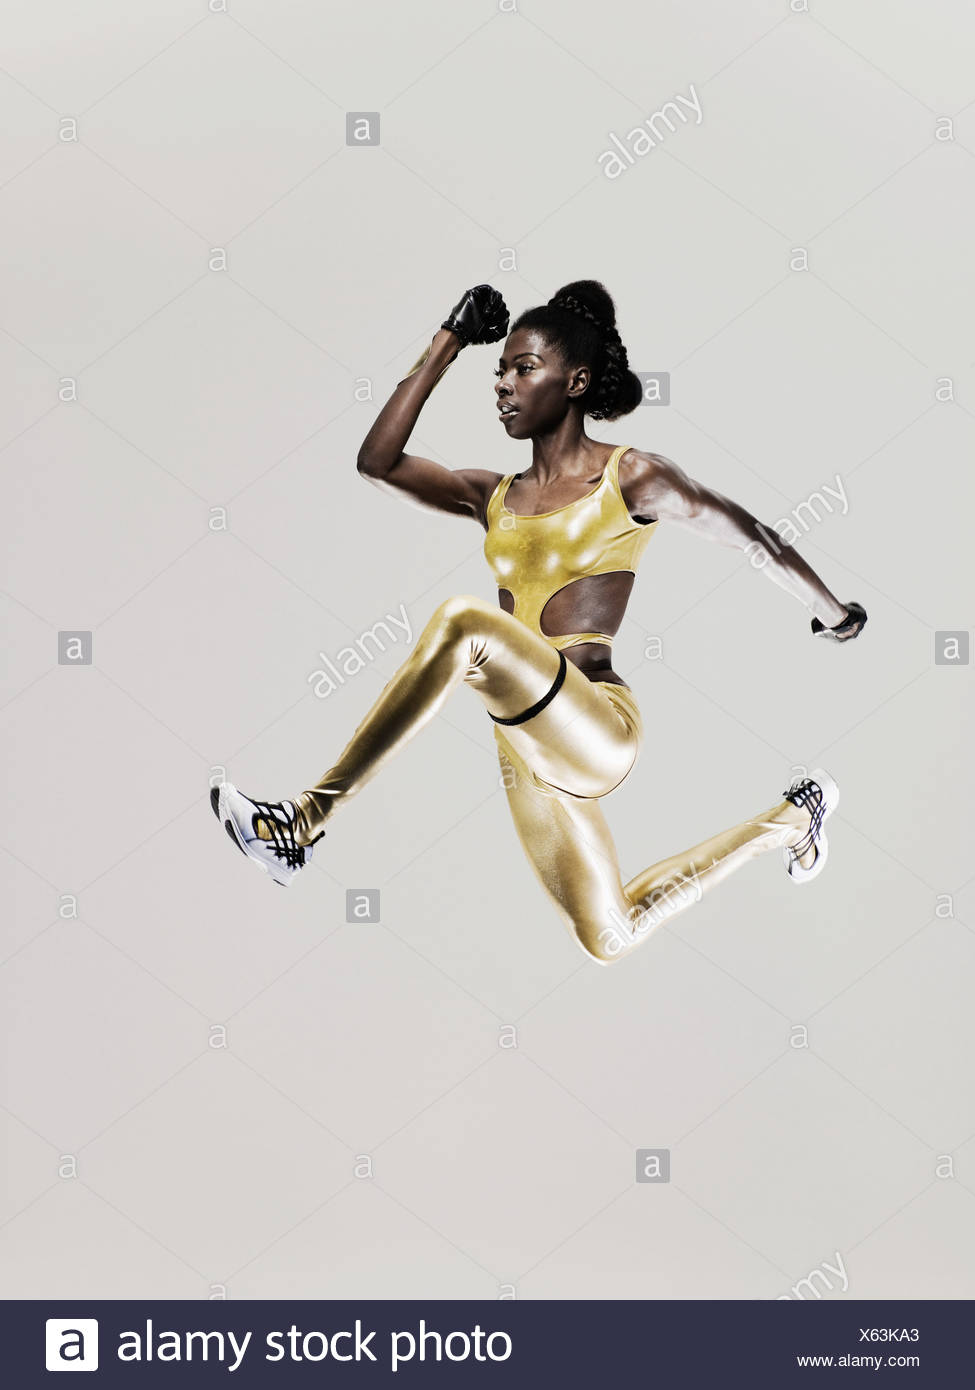 An athlete jumping - Stock Image